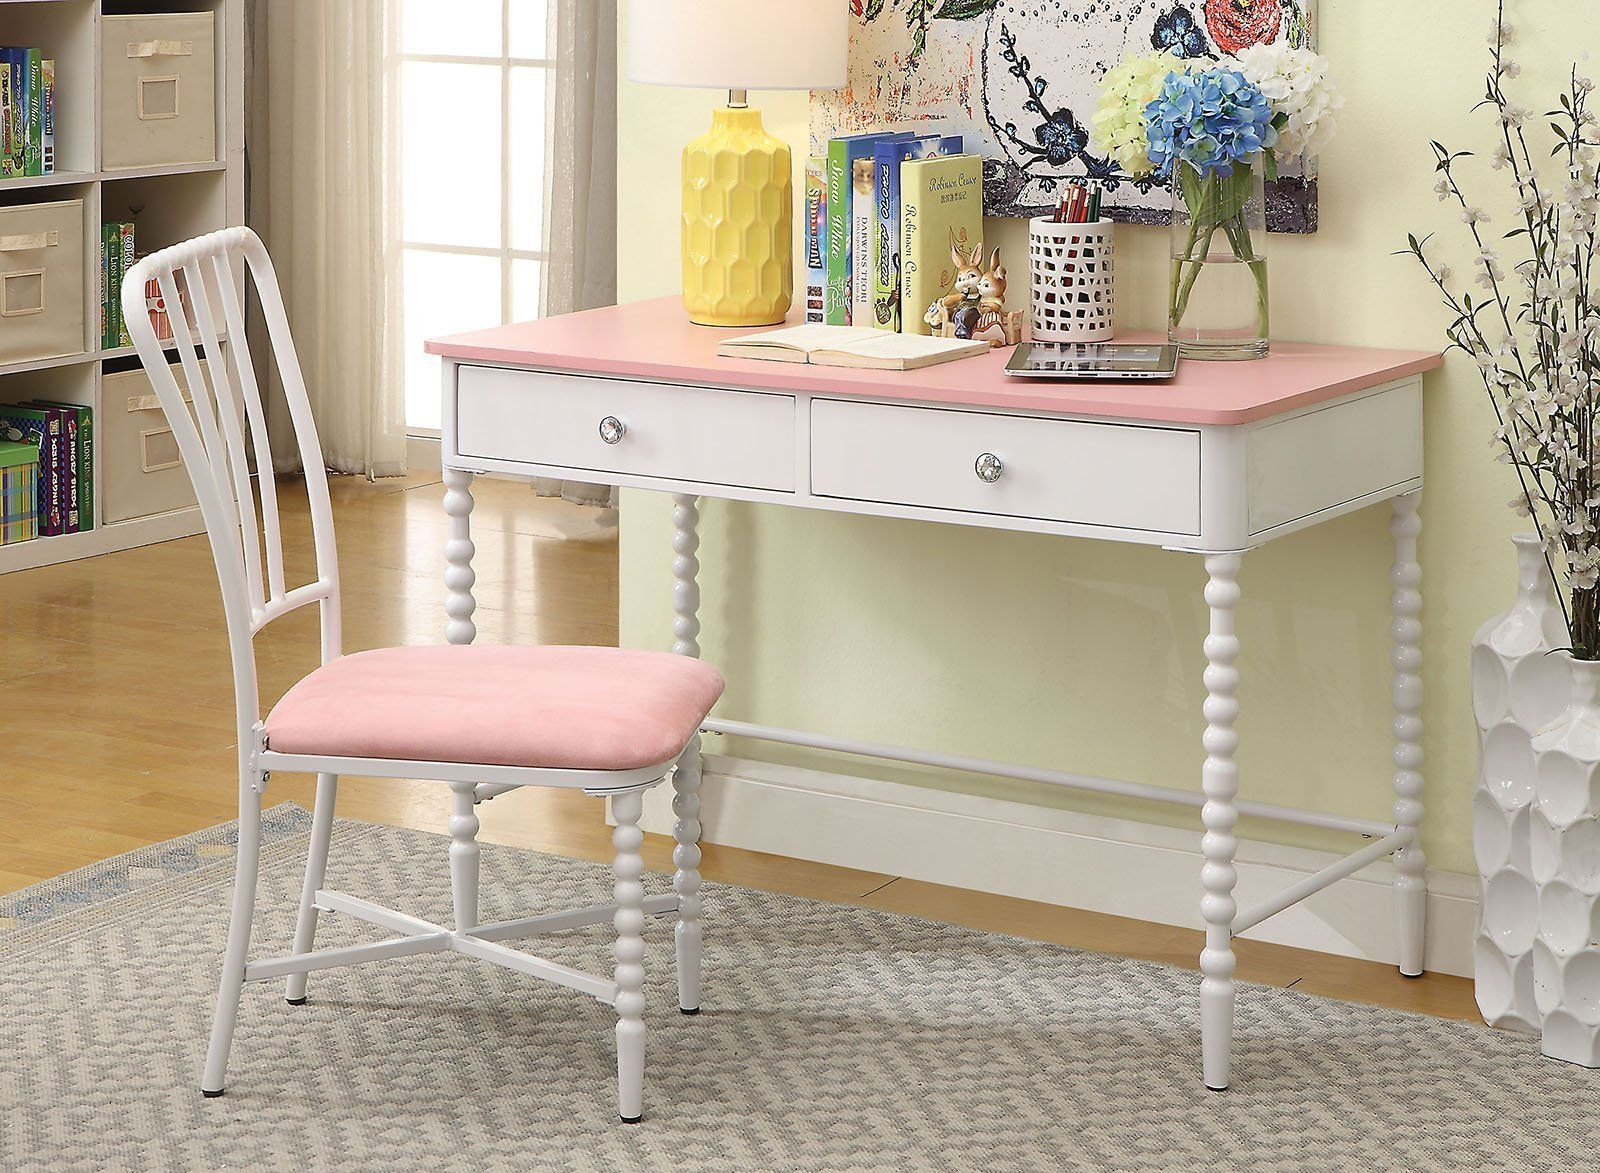 Miraculous Two Drawer Metal And Wooden Desk With Matching Chair Pink Alphanode Cool Chair Designs And Ideas Alphanodeonline